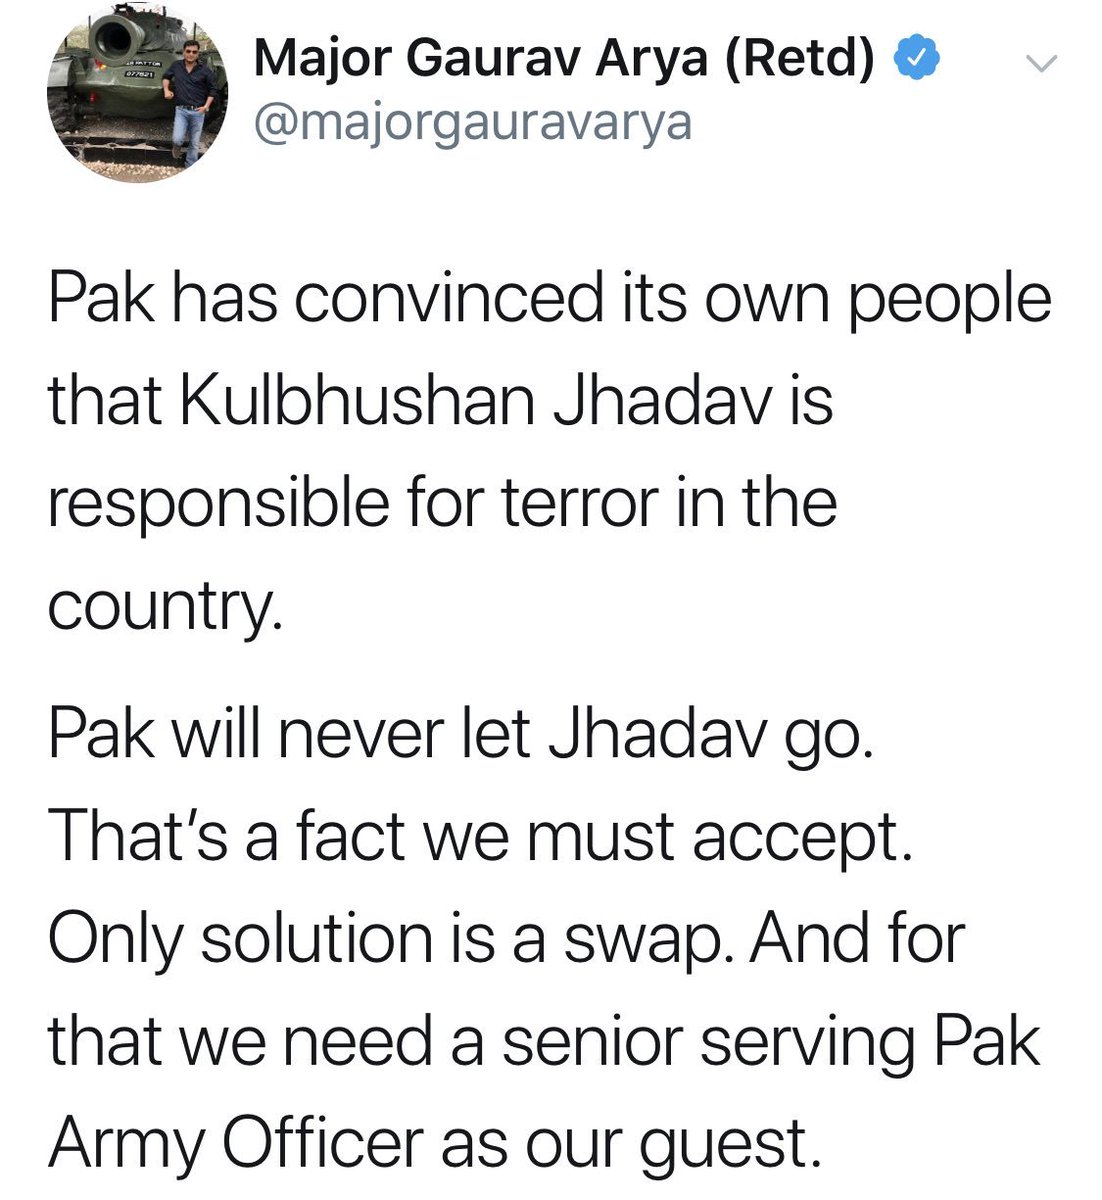 Assessment about Pak & it's people for spy terrorist Kulbhoshan is correct. Acknowledgment of picking & keeping our retd Col speaks lack of your values. No wonders, we know u. Before next venture do consult KBJ & Abhi. Your expressions validate equation btw ur rank & retd status.